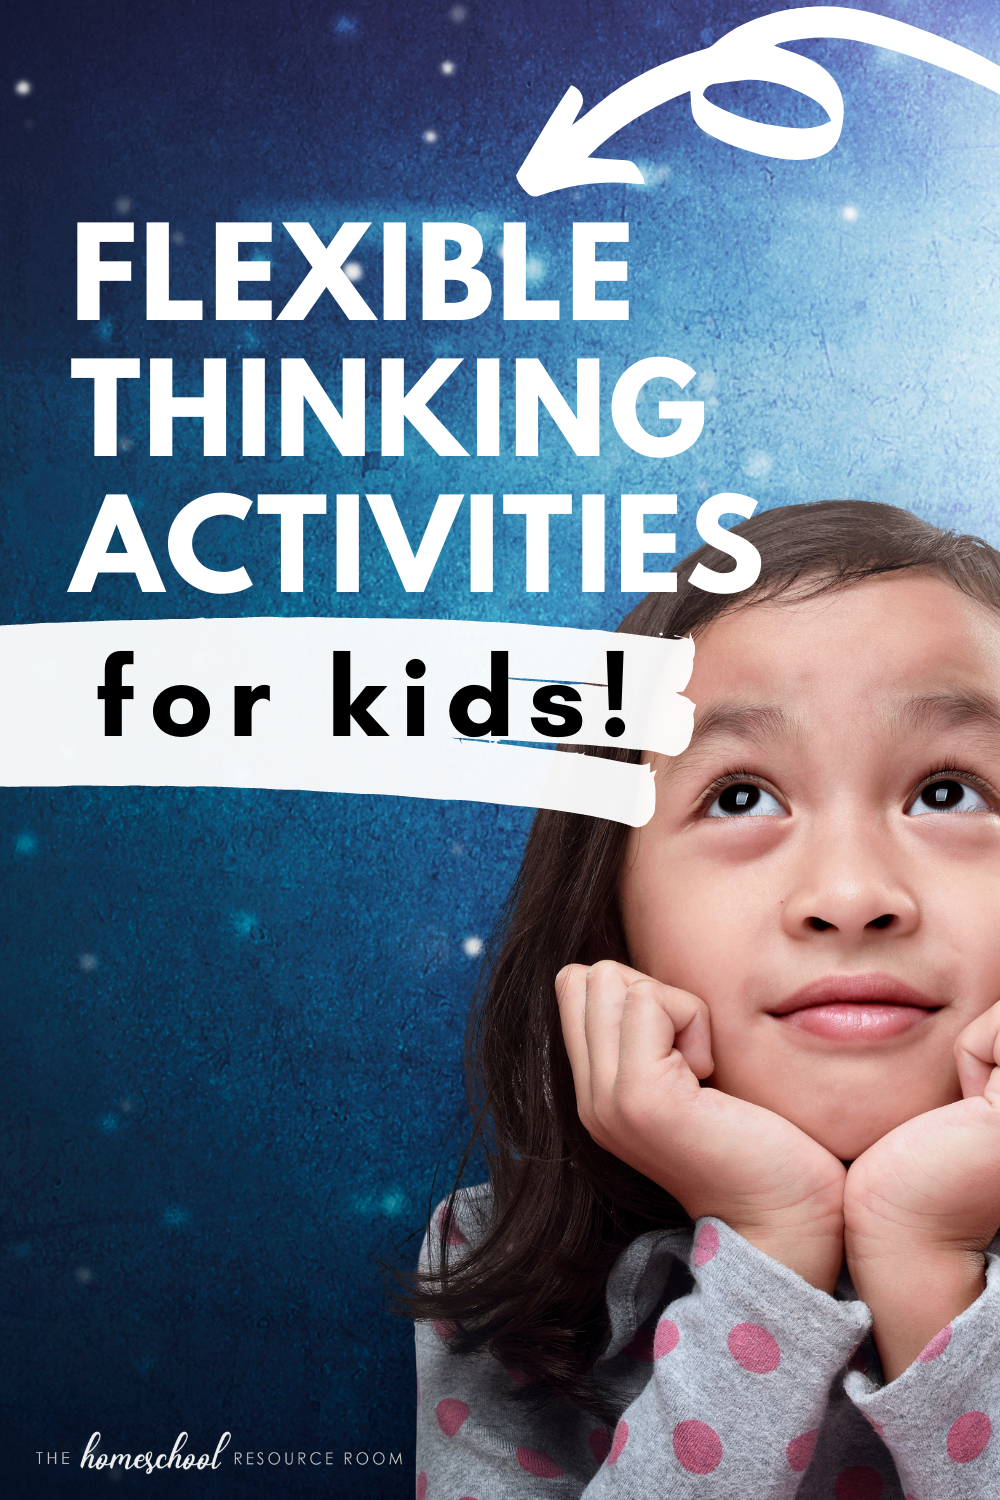 Flexible thinking activities for kids who get stuck! Ideas to try at school or home.